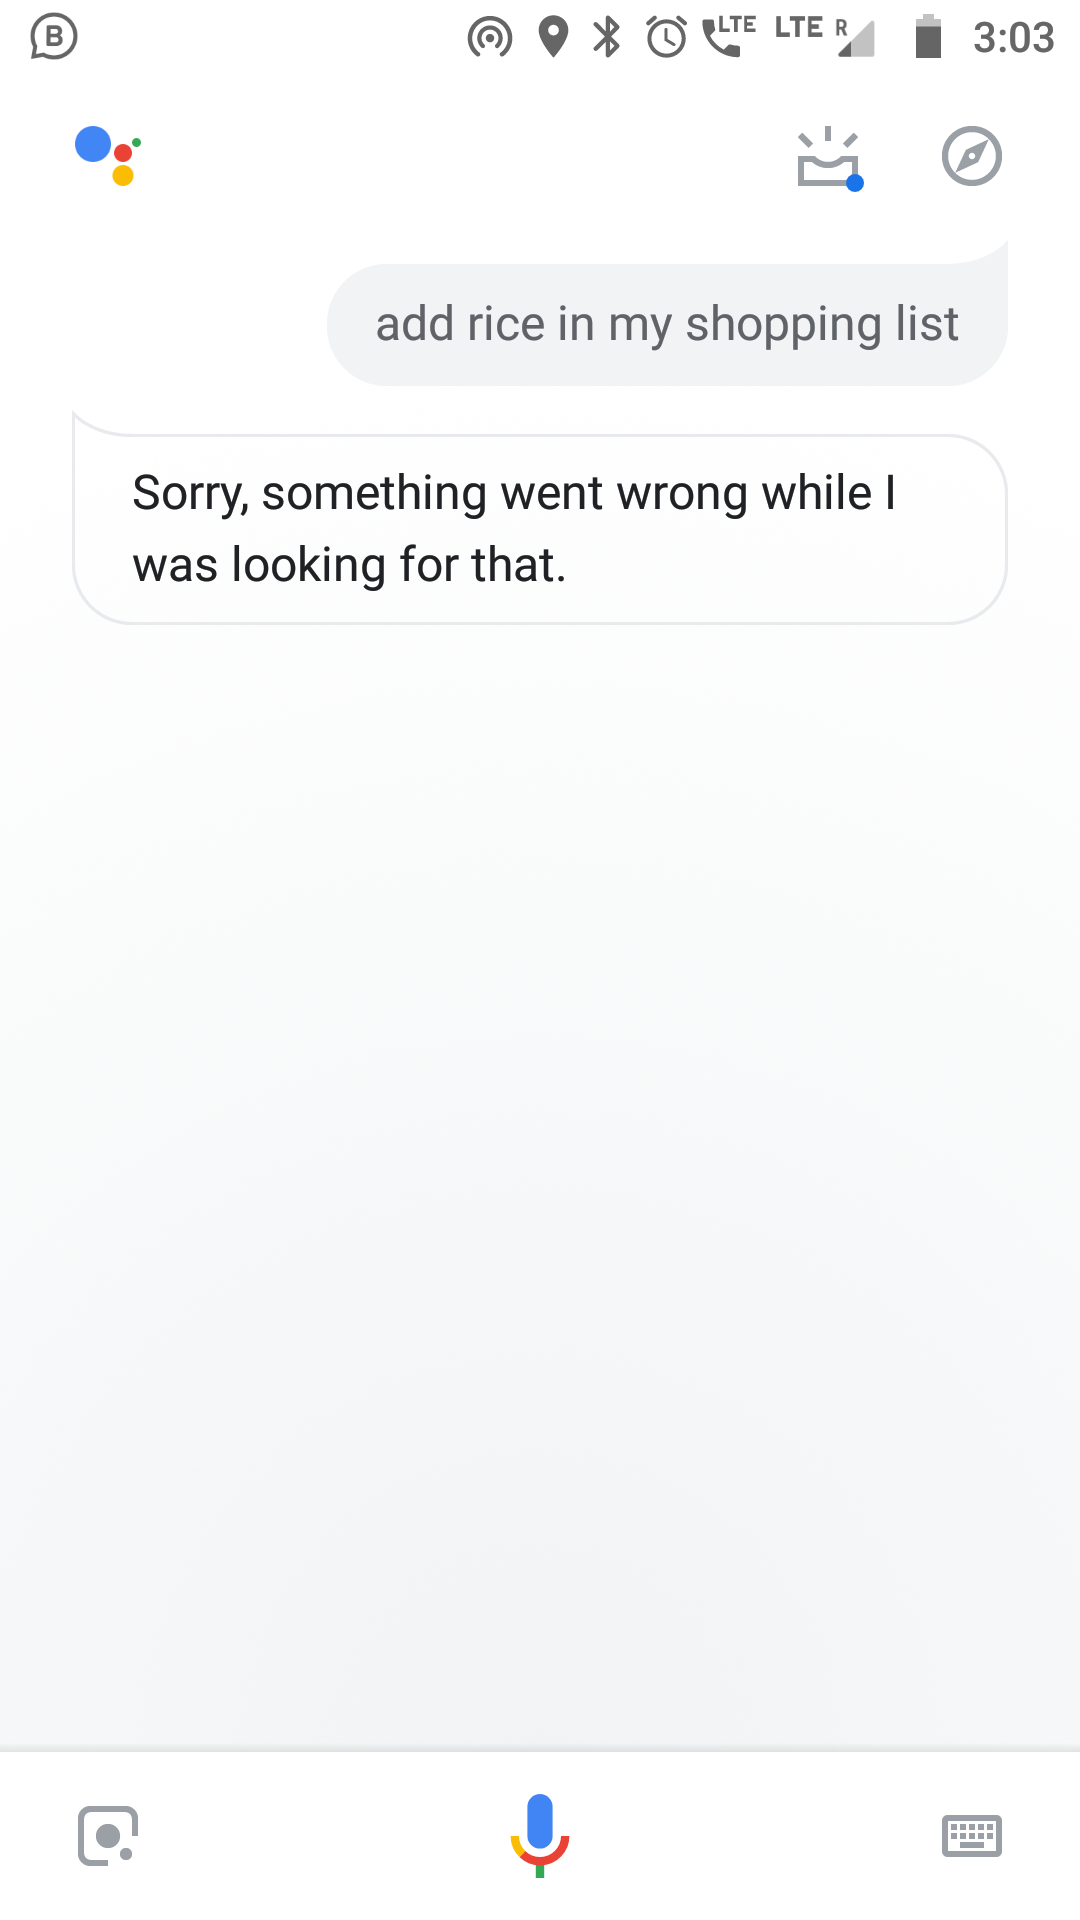 Unable to make a Shopping list - Google Assistant Help